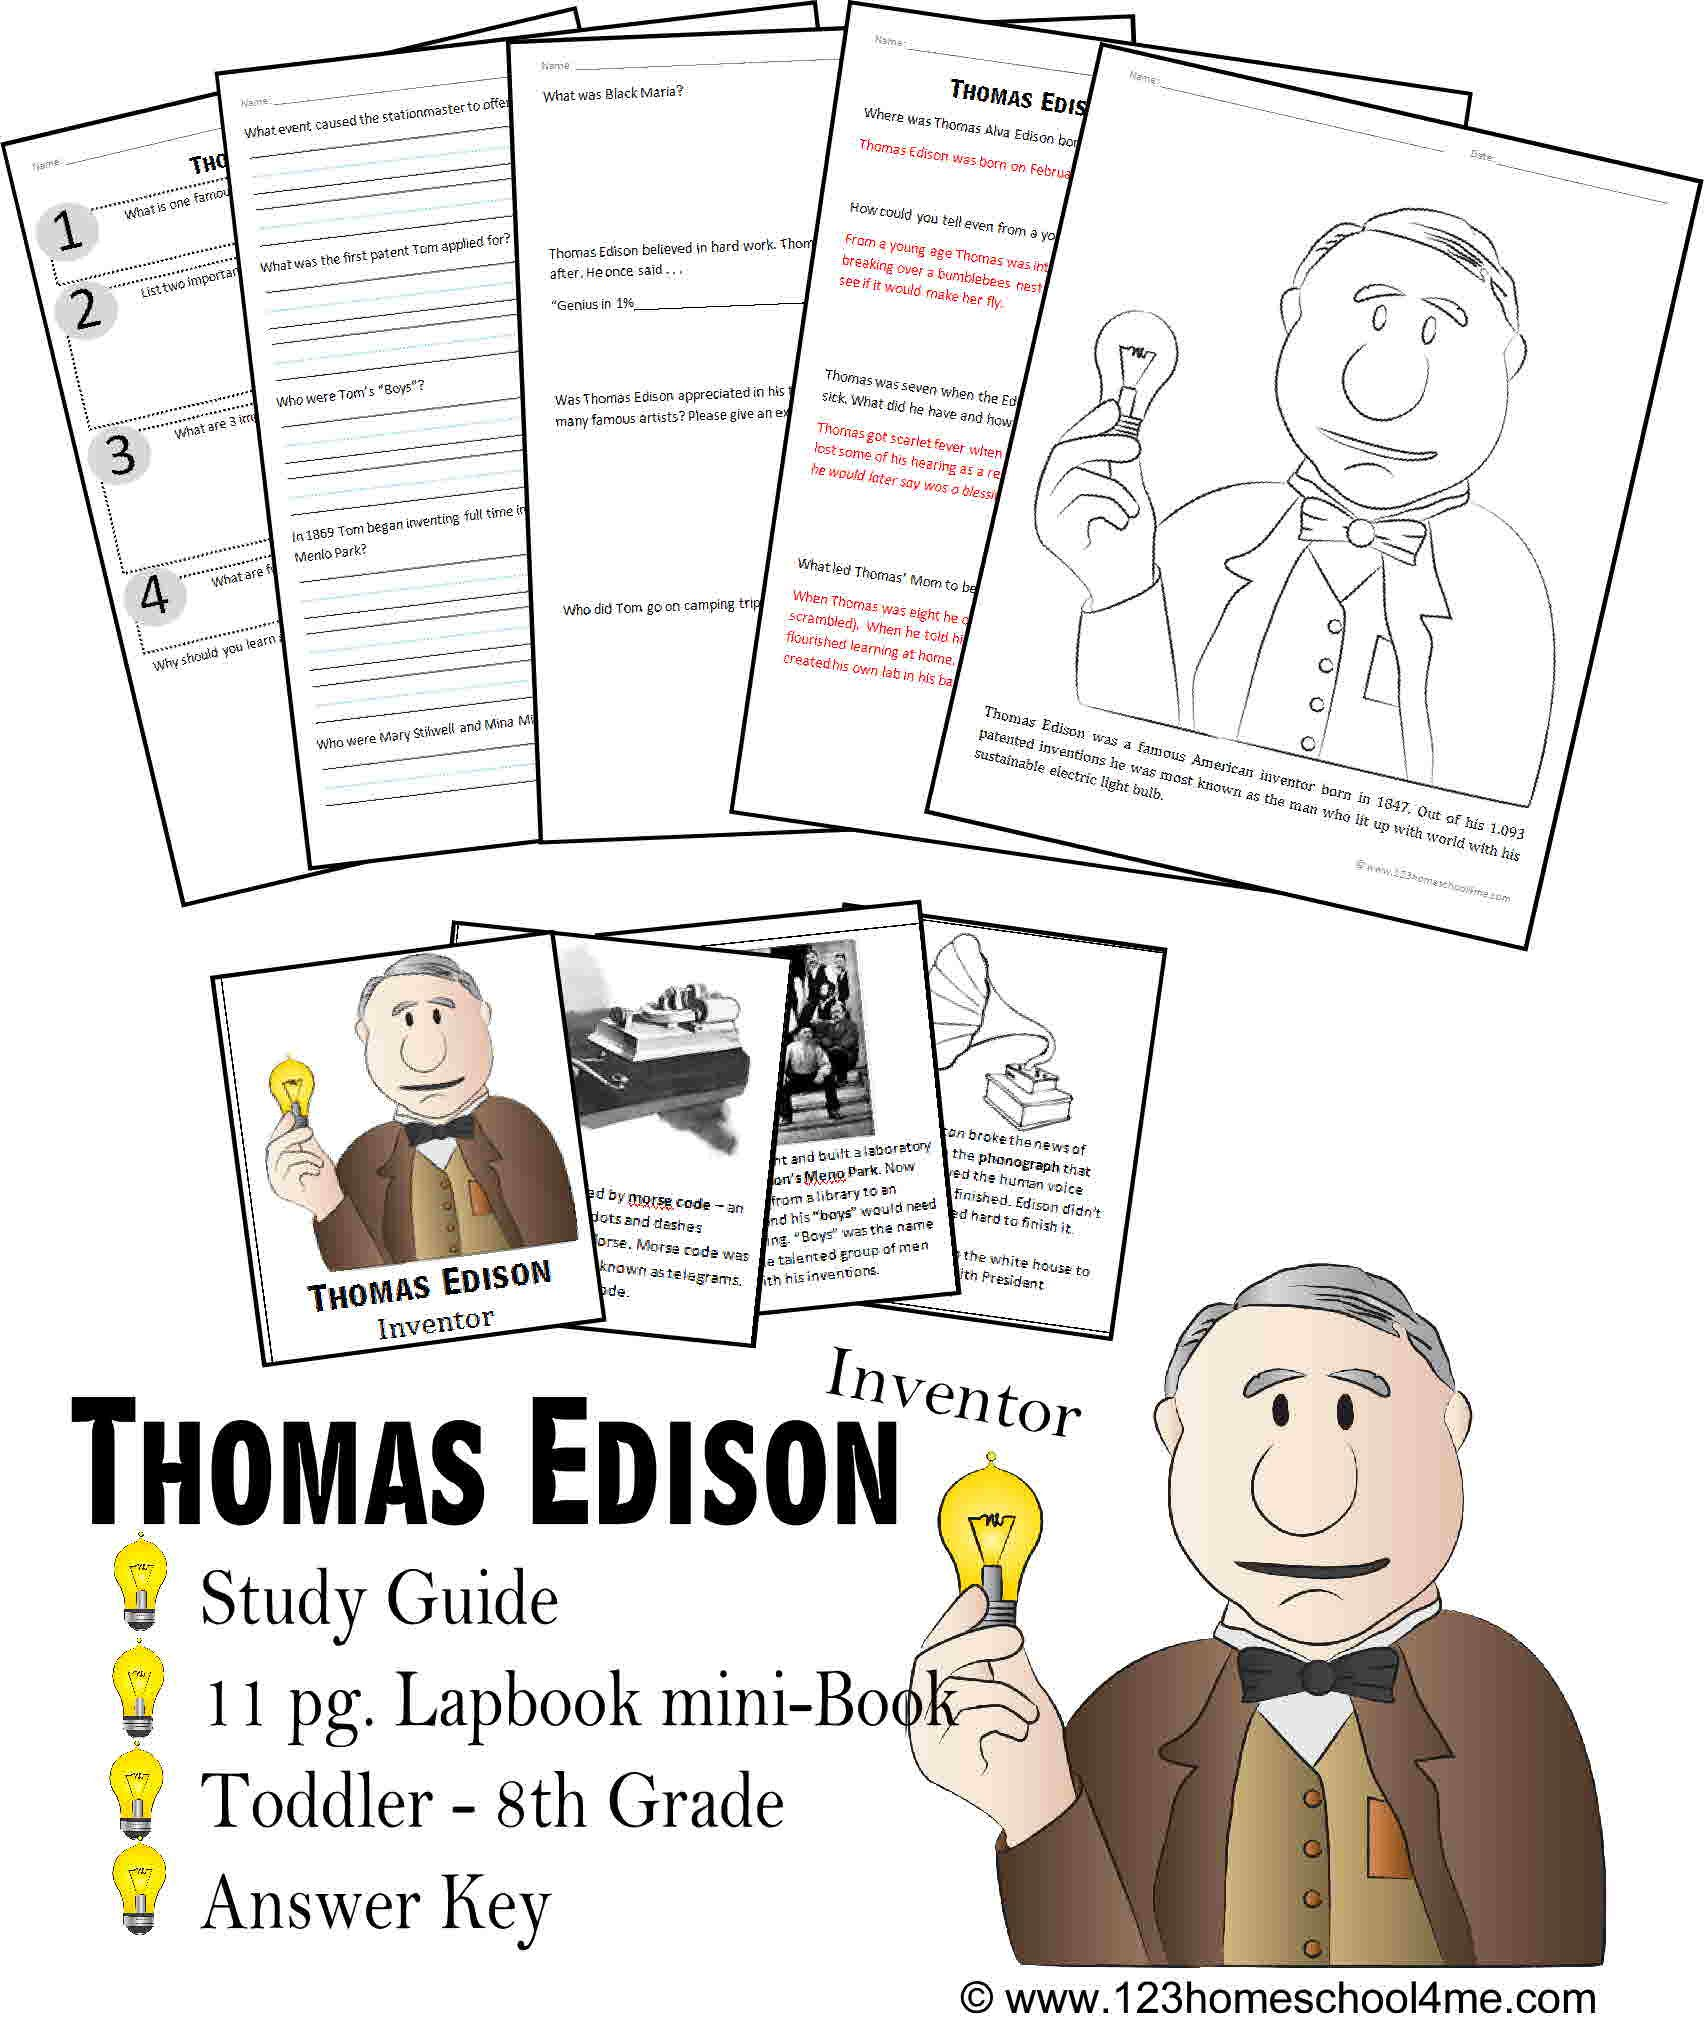 Thomas Edison Biography Report K 8th